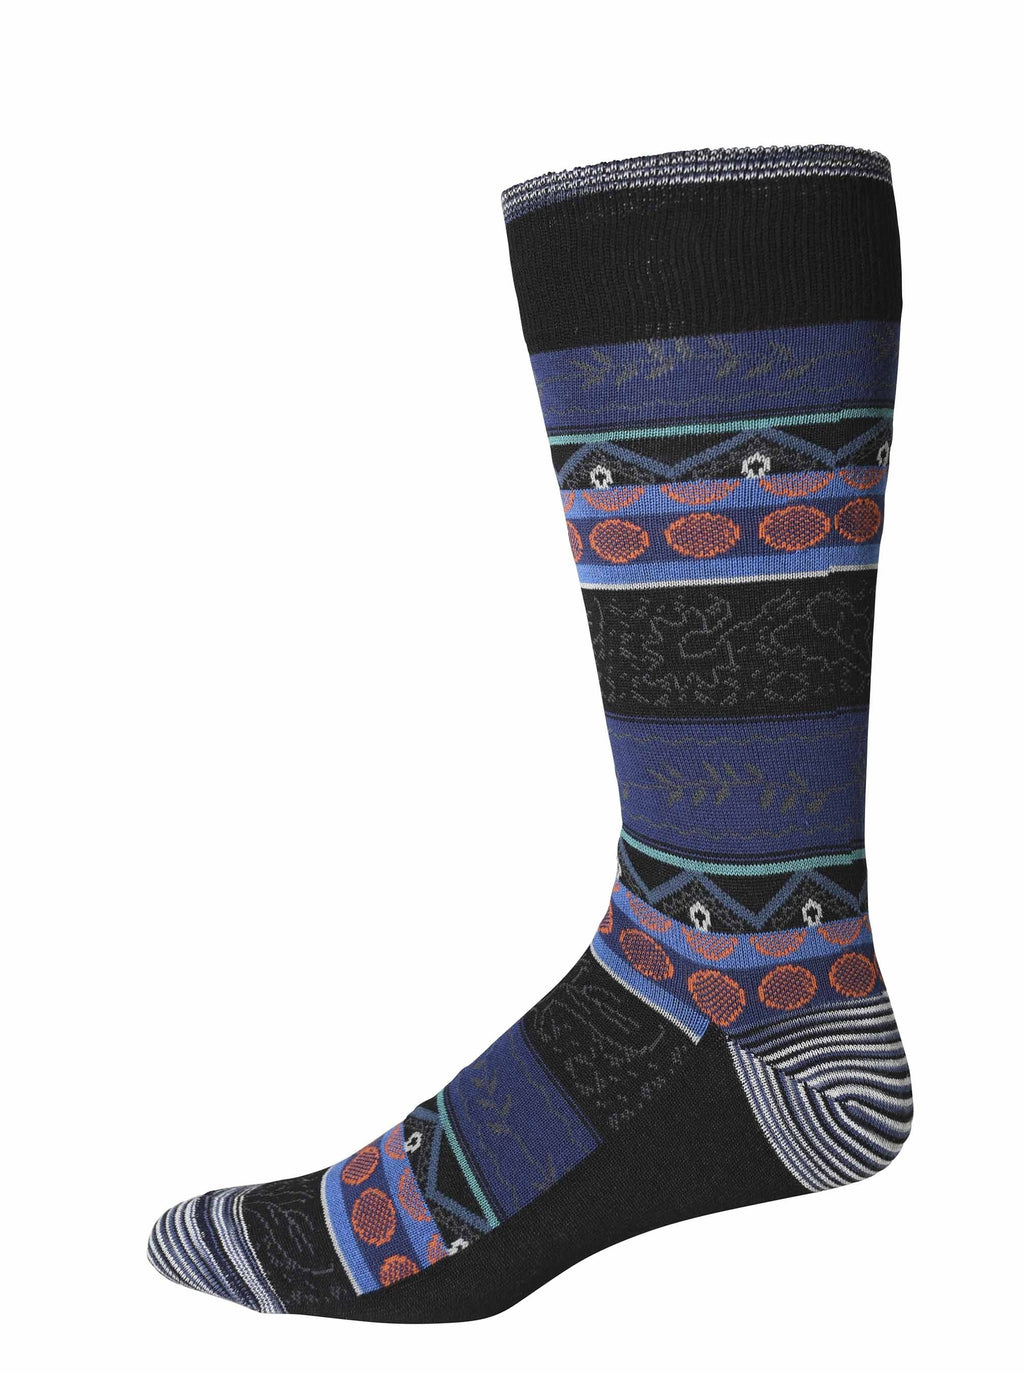 Robert Graham Socks - Sparks